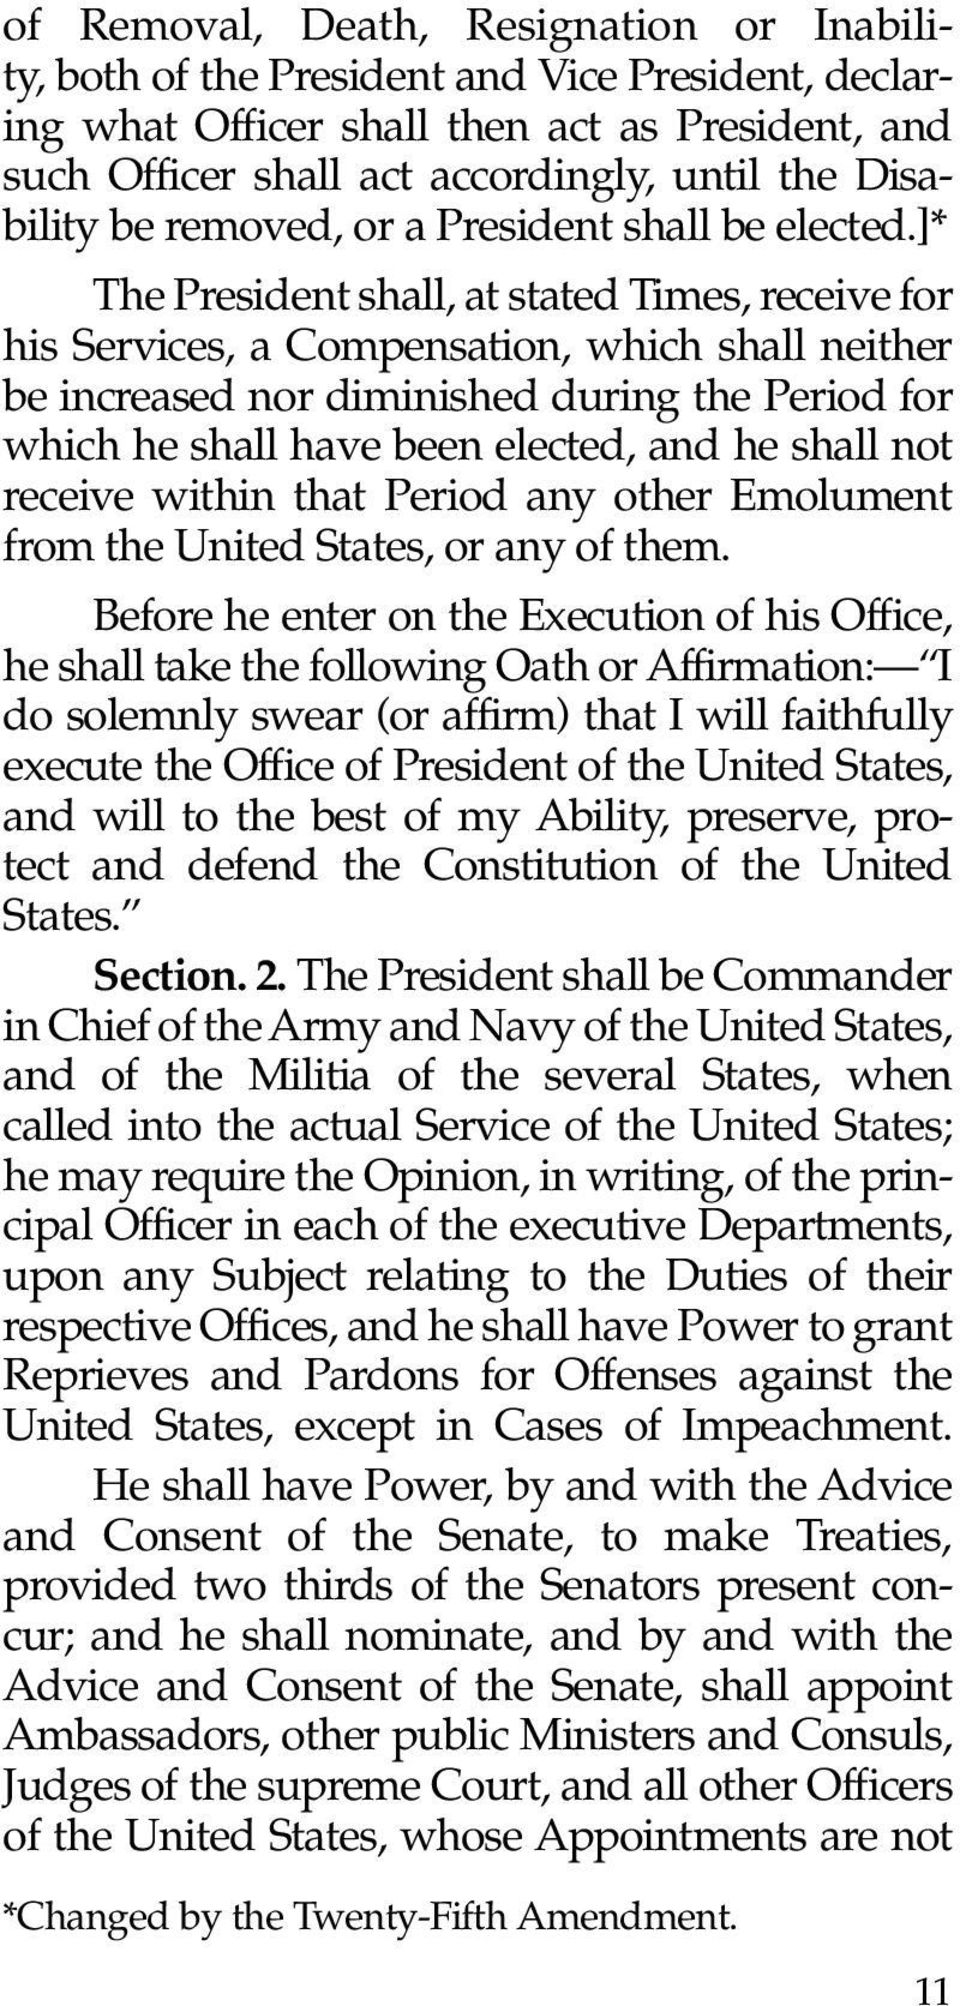 ]* The President shall, at stated Times, receive for his Services, a Compensation, which shall neither be increased nor diminished during the Period for which he shall have been elected, and he shall